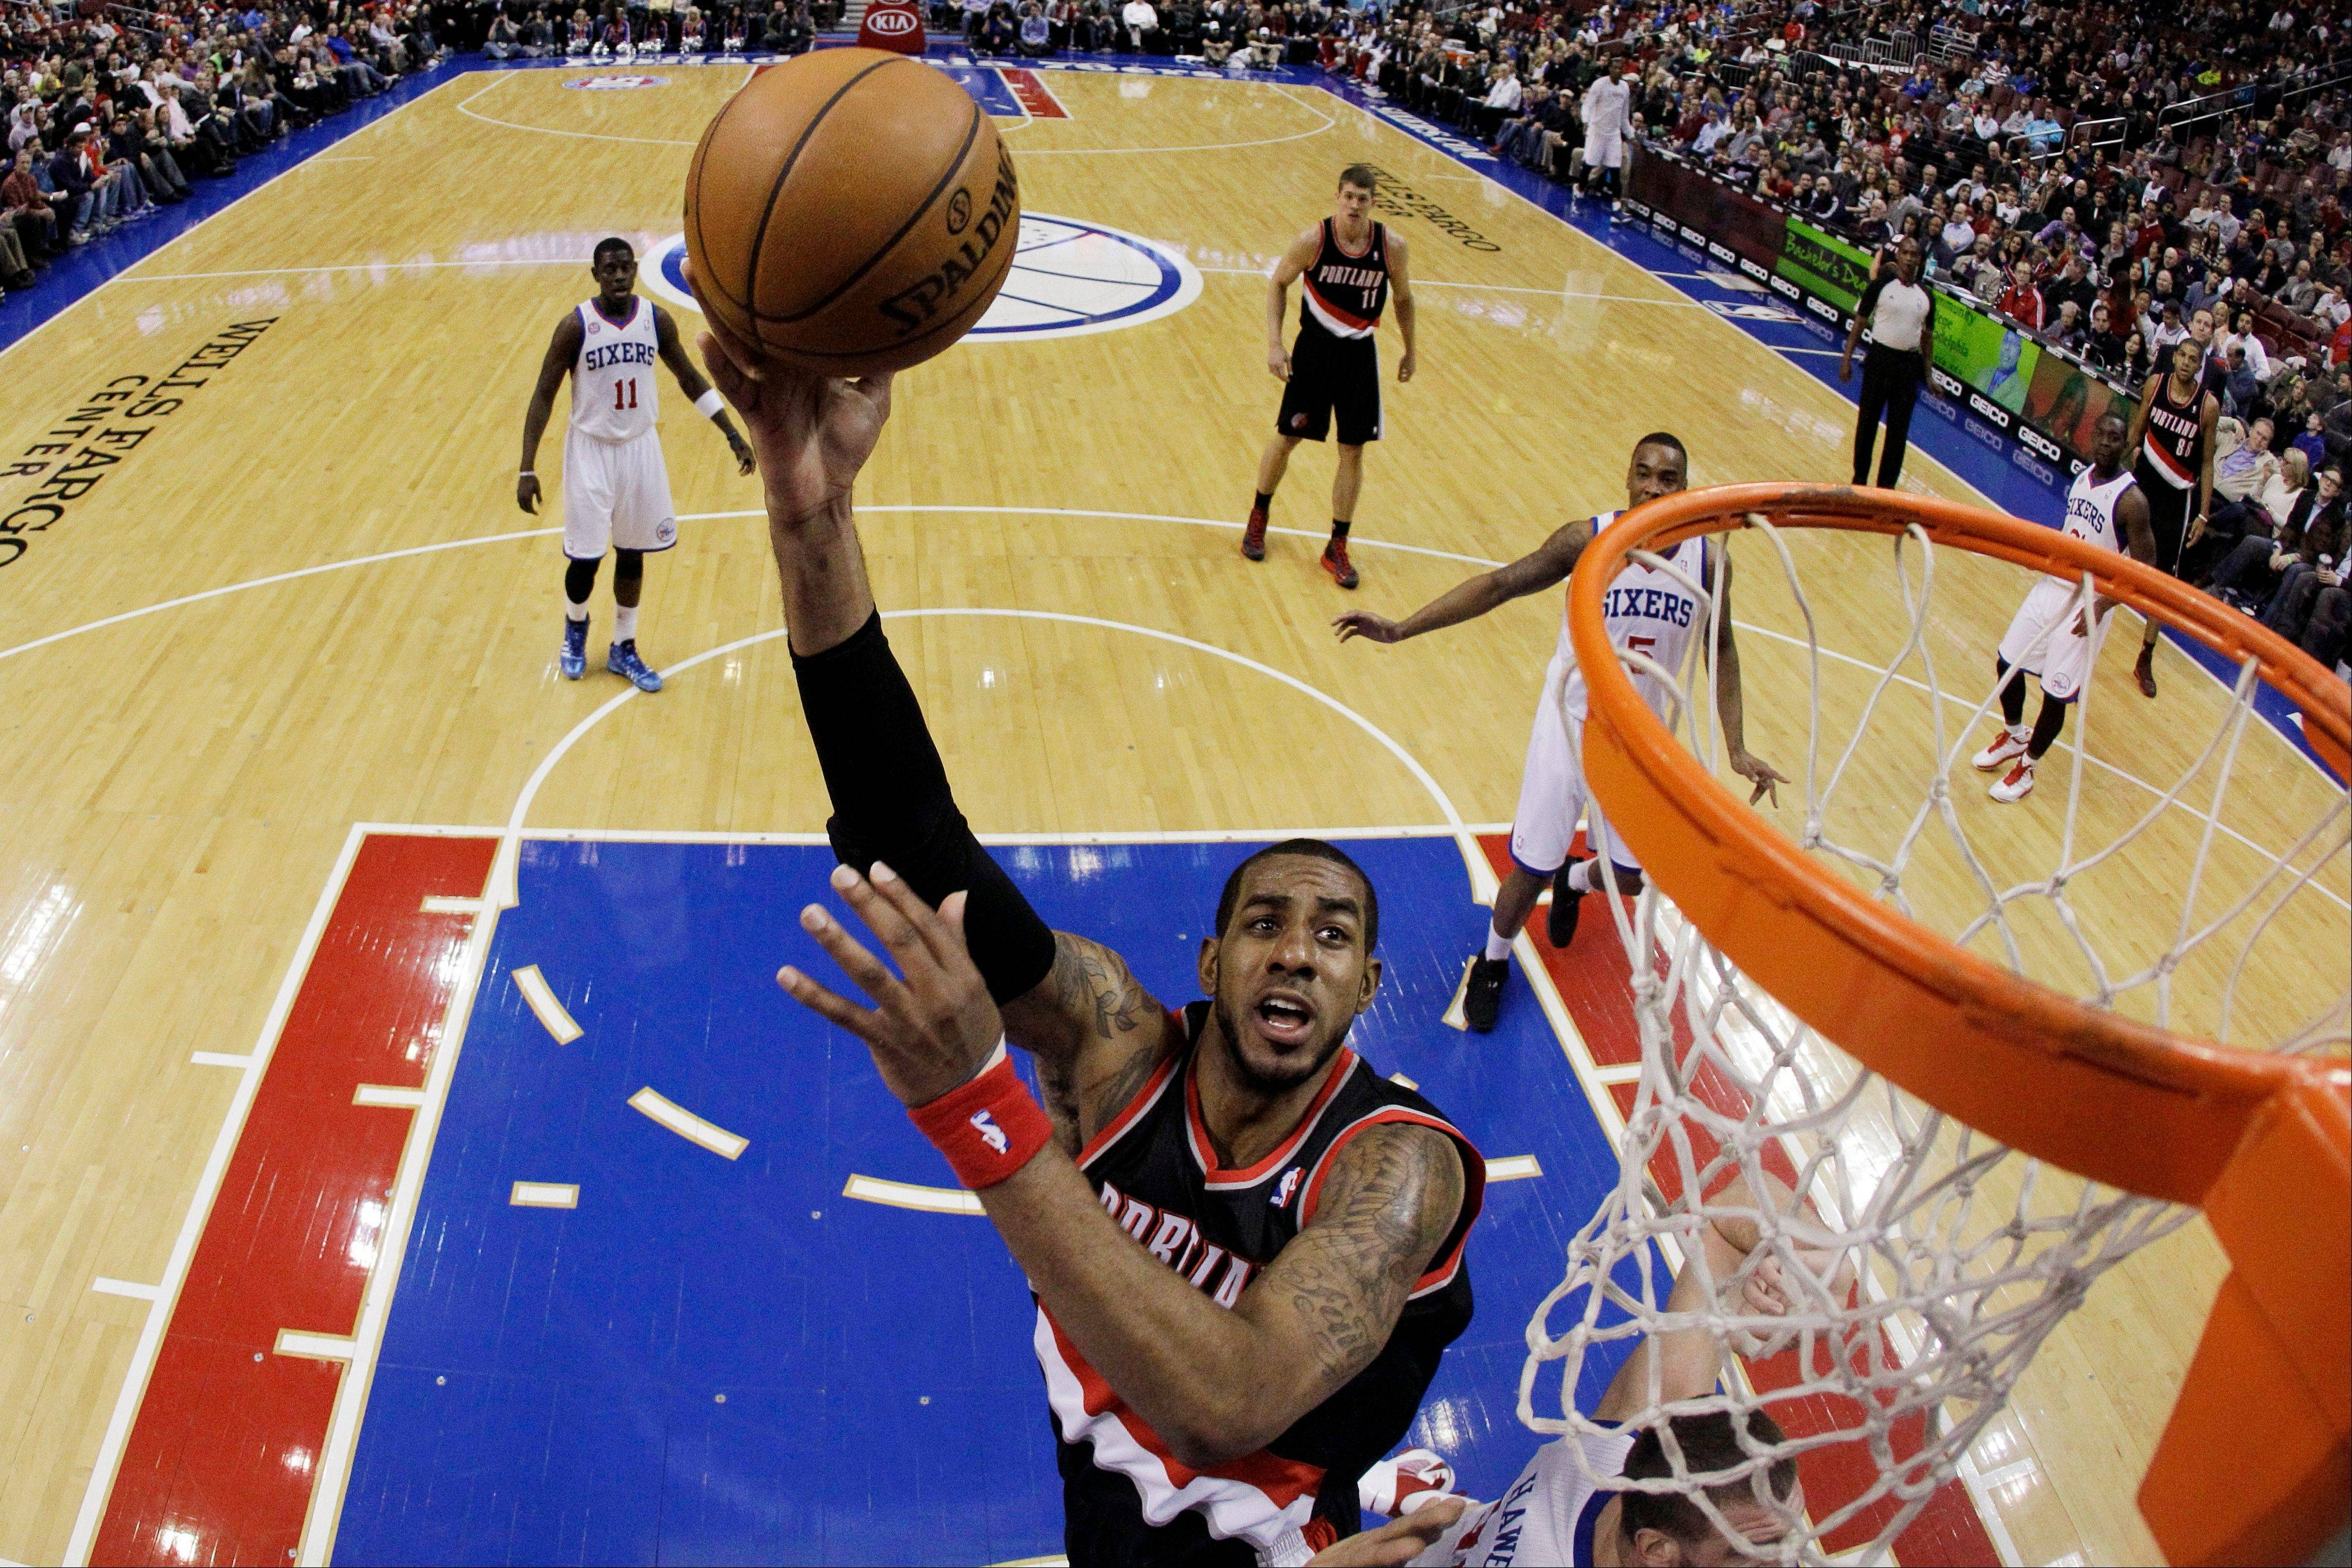 Portland Trail Blazers' LaMarcus Aldridge shoots during the first half of an NBA basketball game against the Philadelphia 76ers on Monday in Philadelphia.